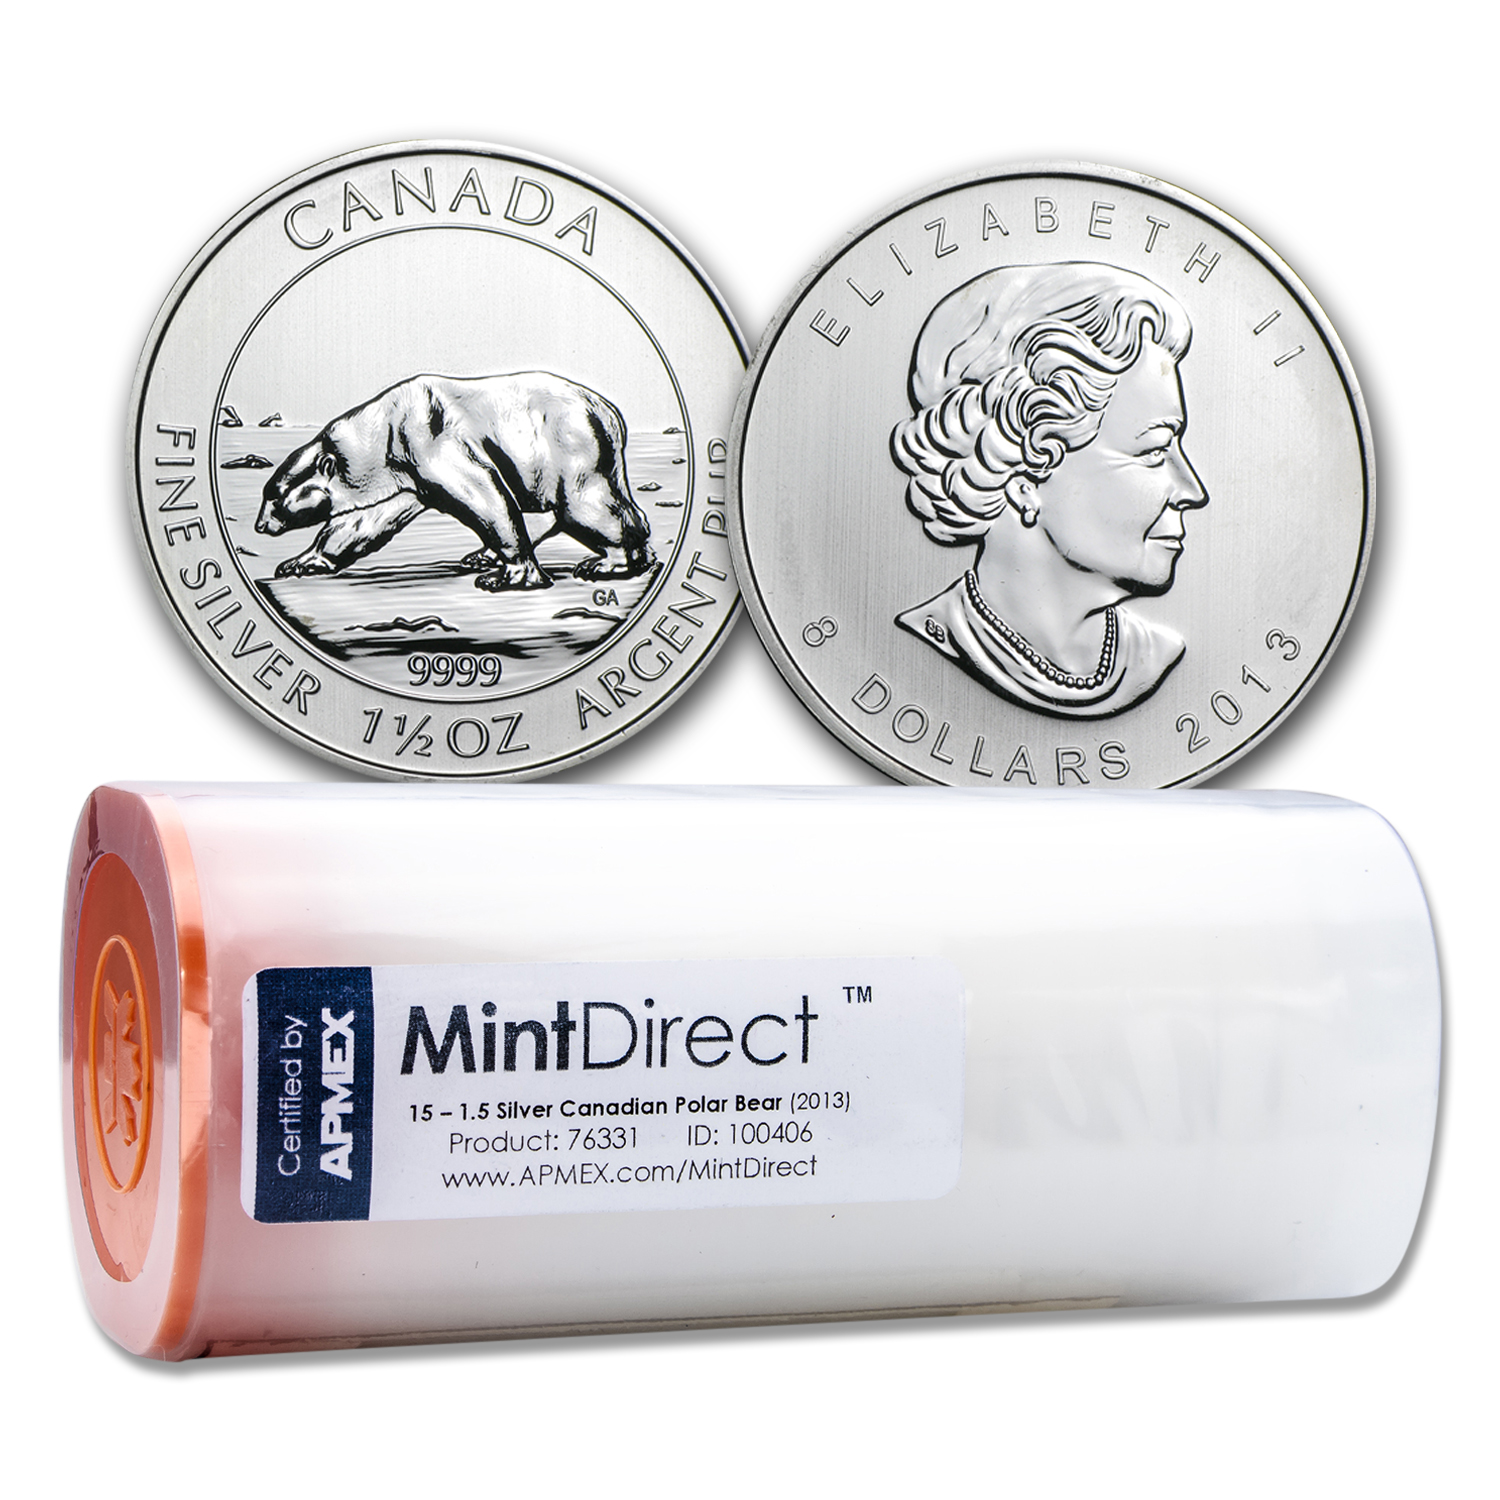 2013 Canada 1.5 oz Silver $8 Polar Bear (15-Coin MintDirect®)